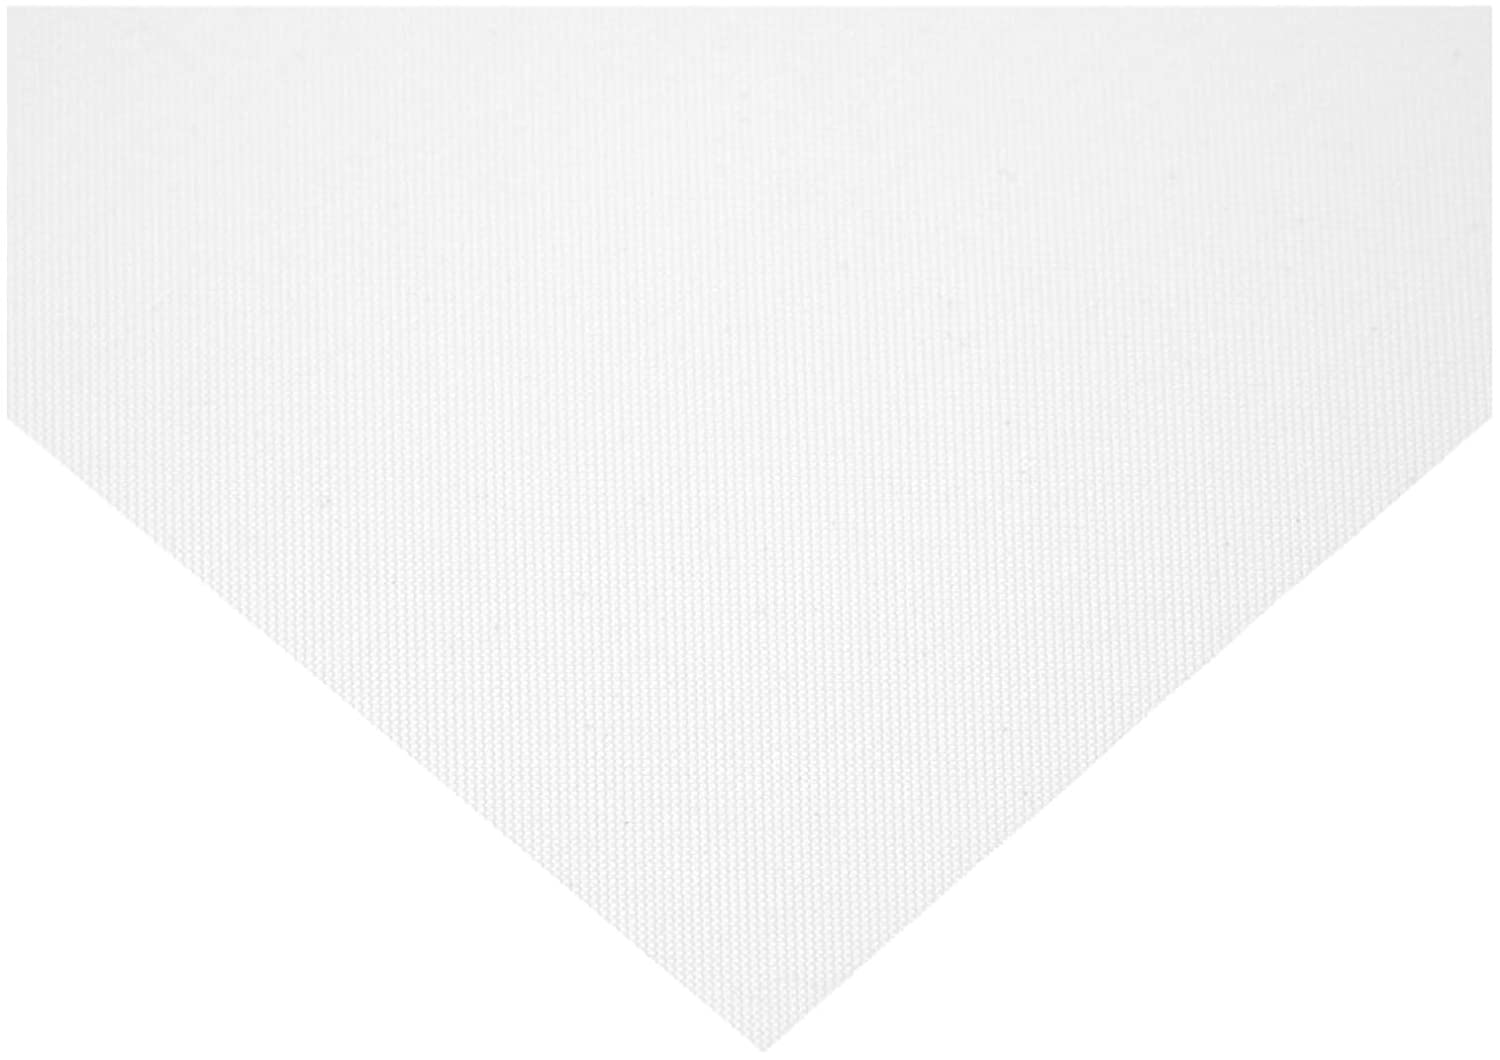 Opaque Off-White 12 Length 12 Width Polyester Mesh Sheet 300 microns Mesh Size 46/% Open Area